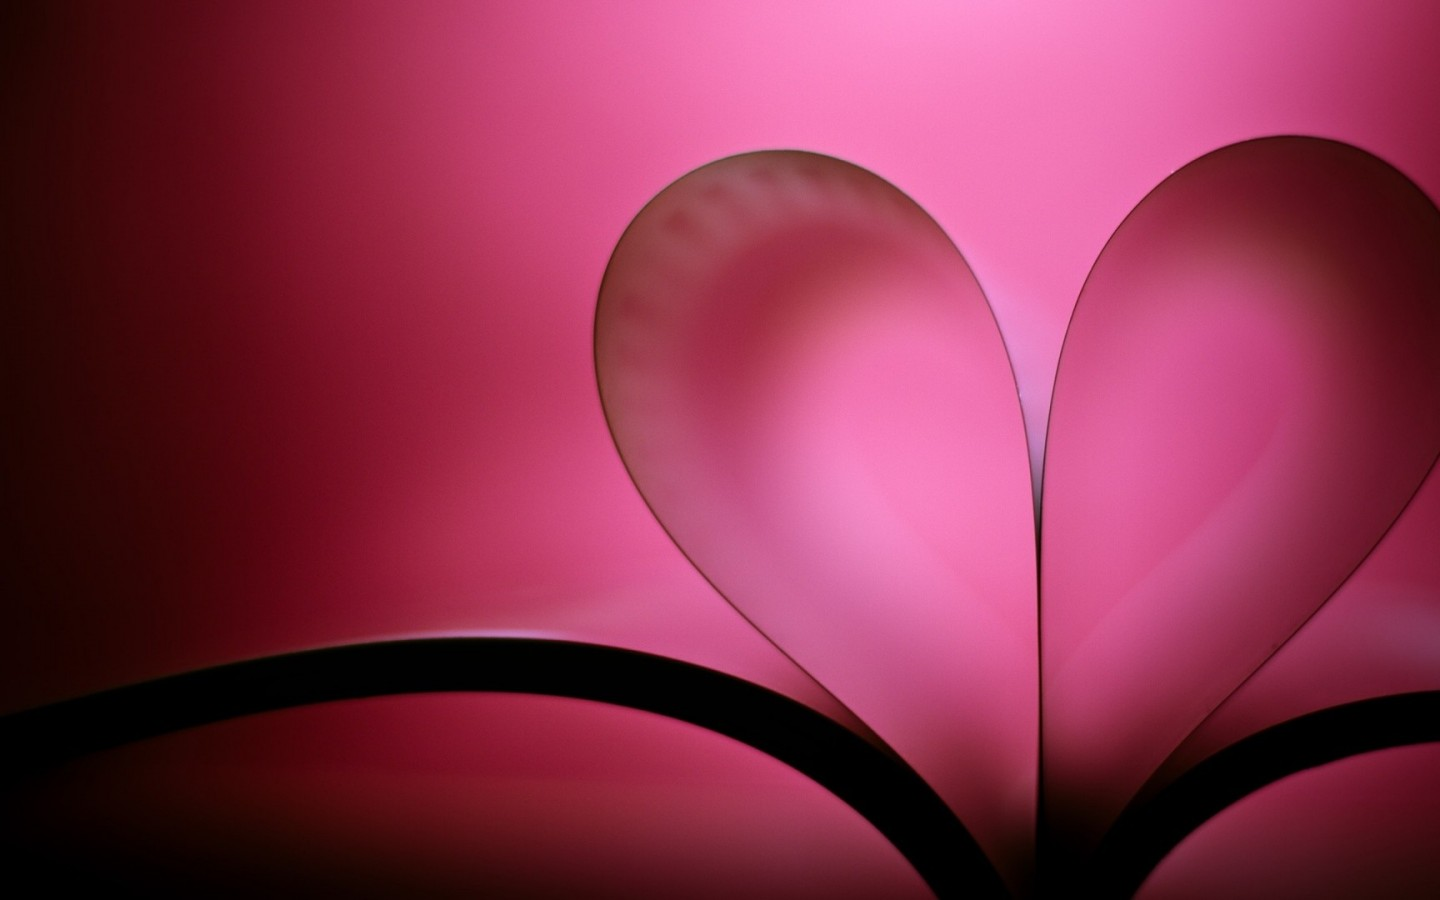 Hd Wallpaper Of Love For Laptop : HD Love Wallpapers for Laptop - WallpaperSafari